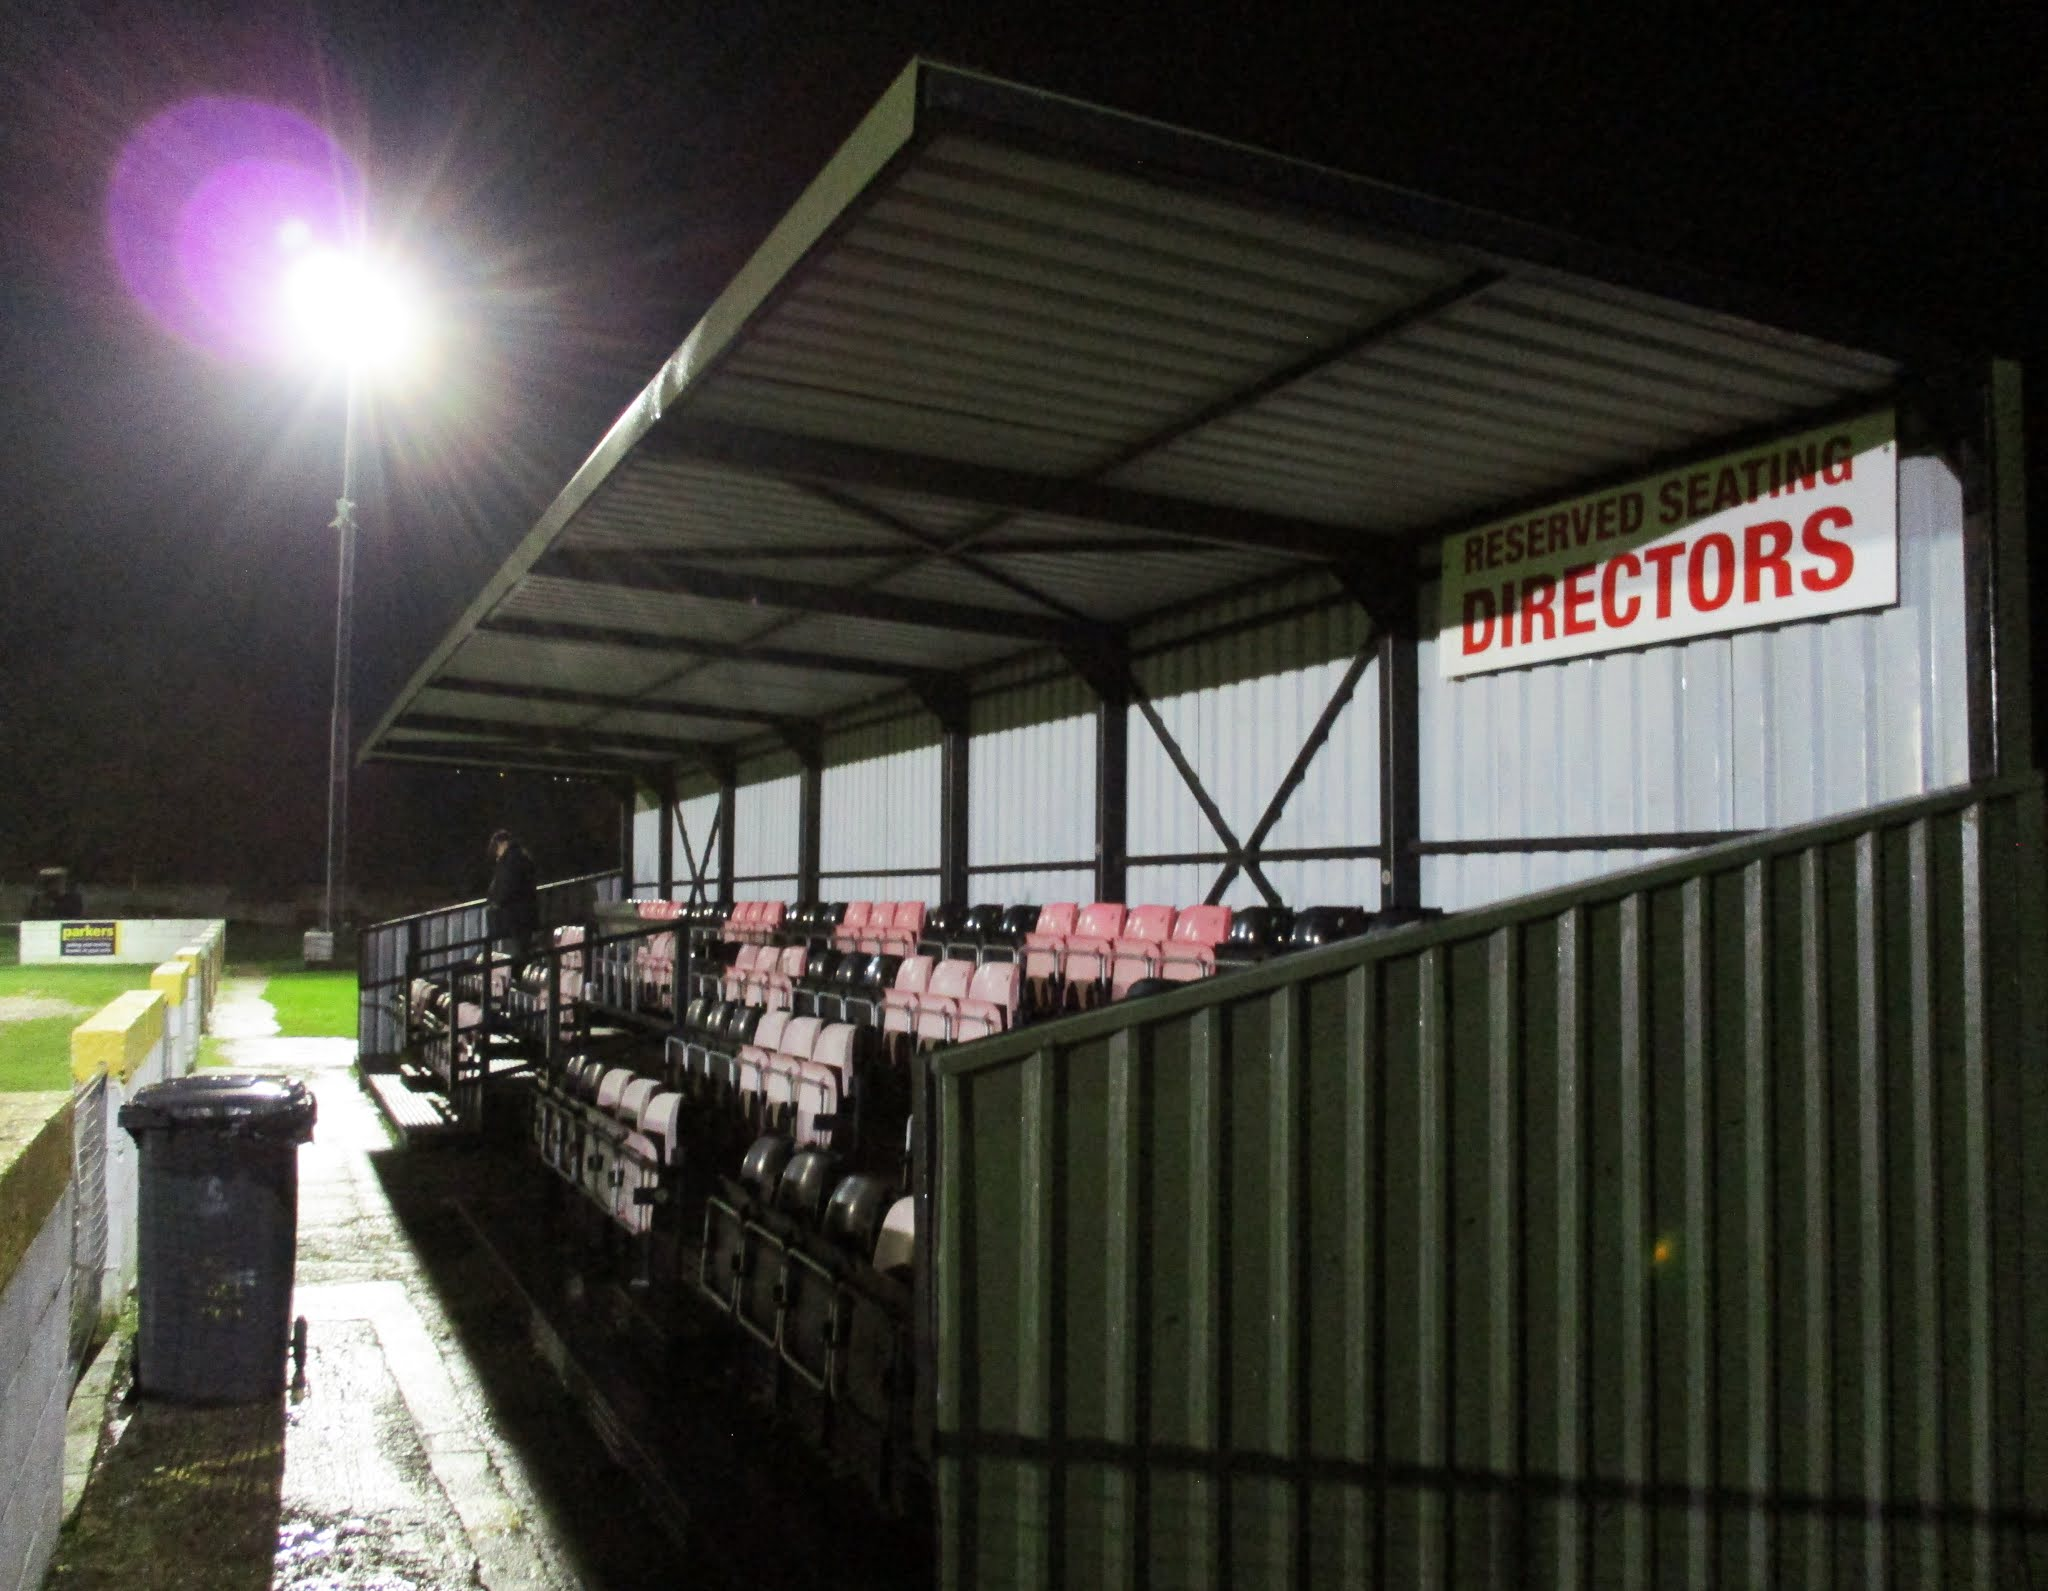 The main stand at The Rivermoor Stadium, Reading